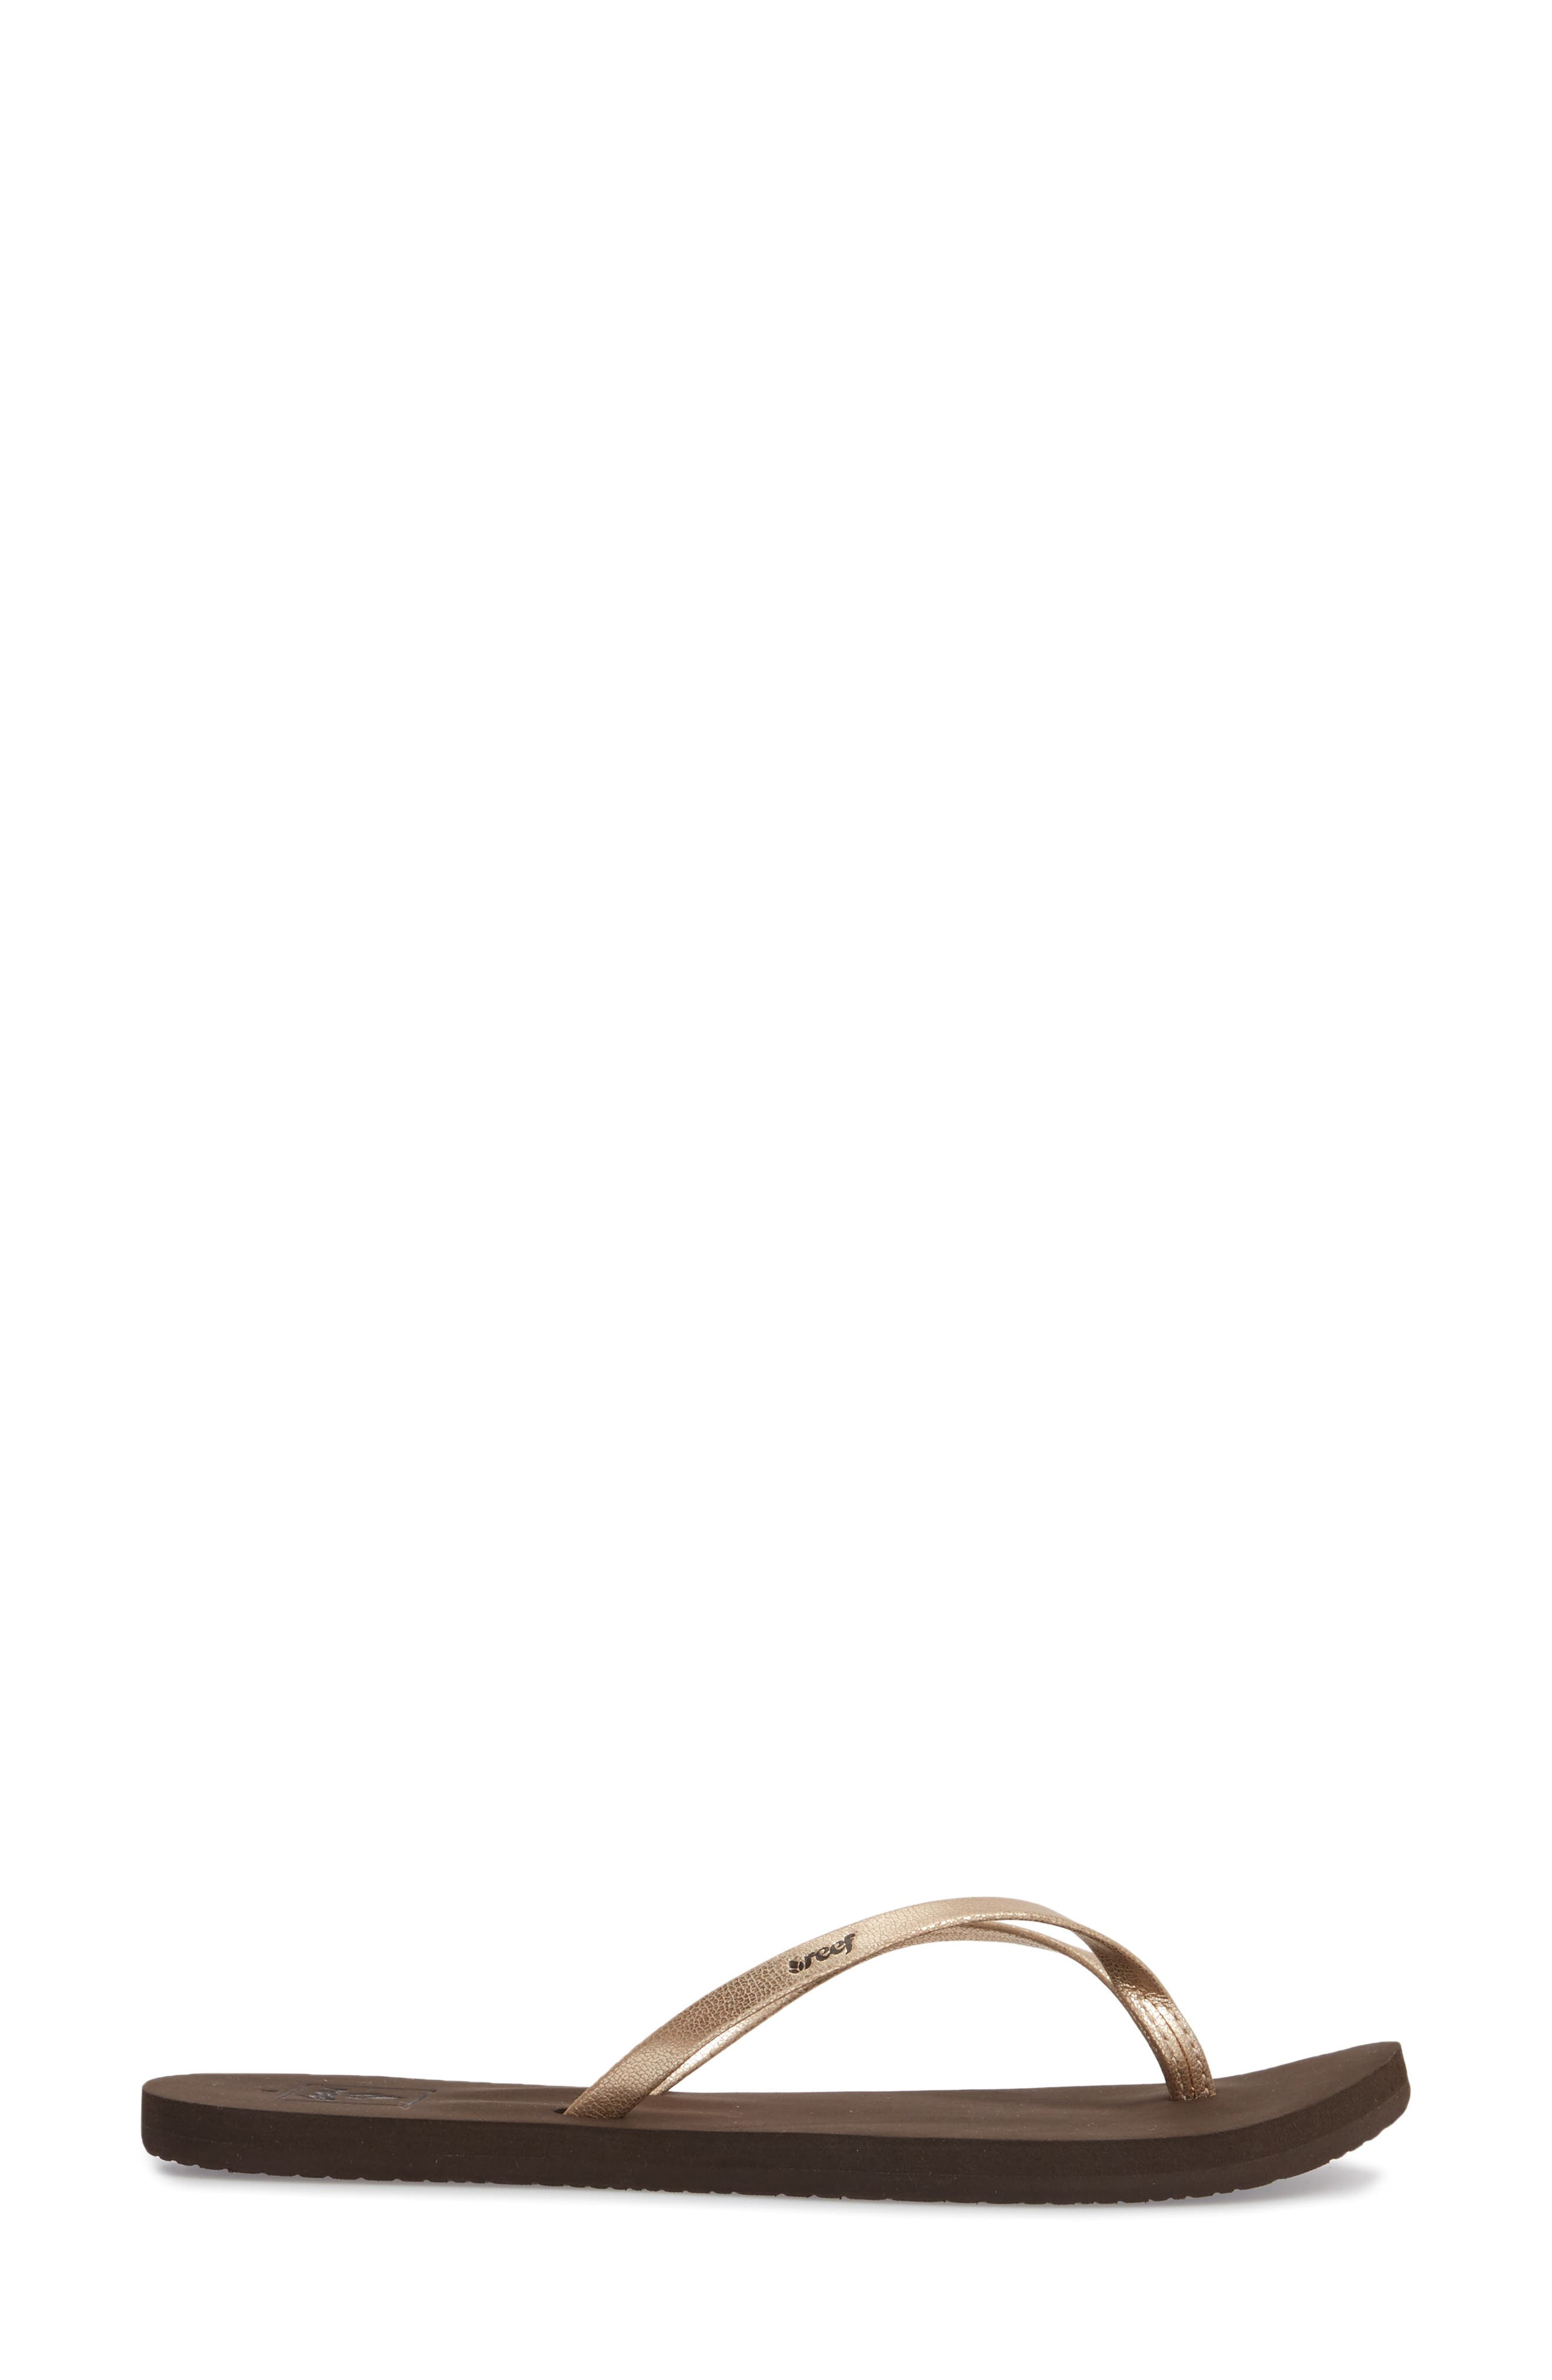 REEF, Bliss Nights Flip Flop, Alternate thumbnail 3, color, ROSE GOLD